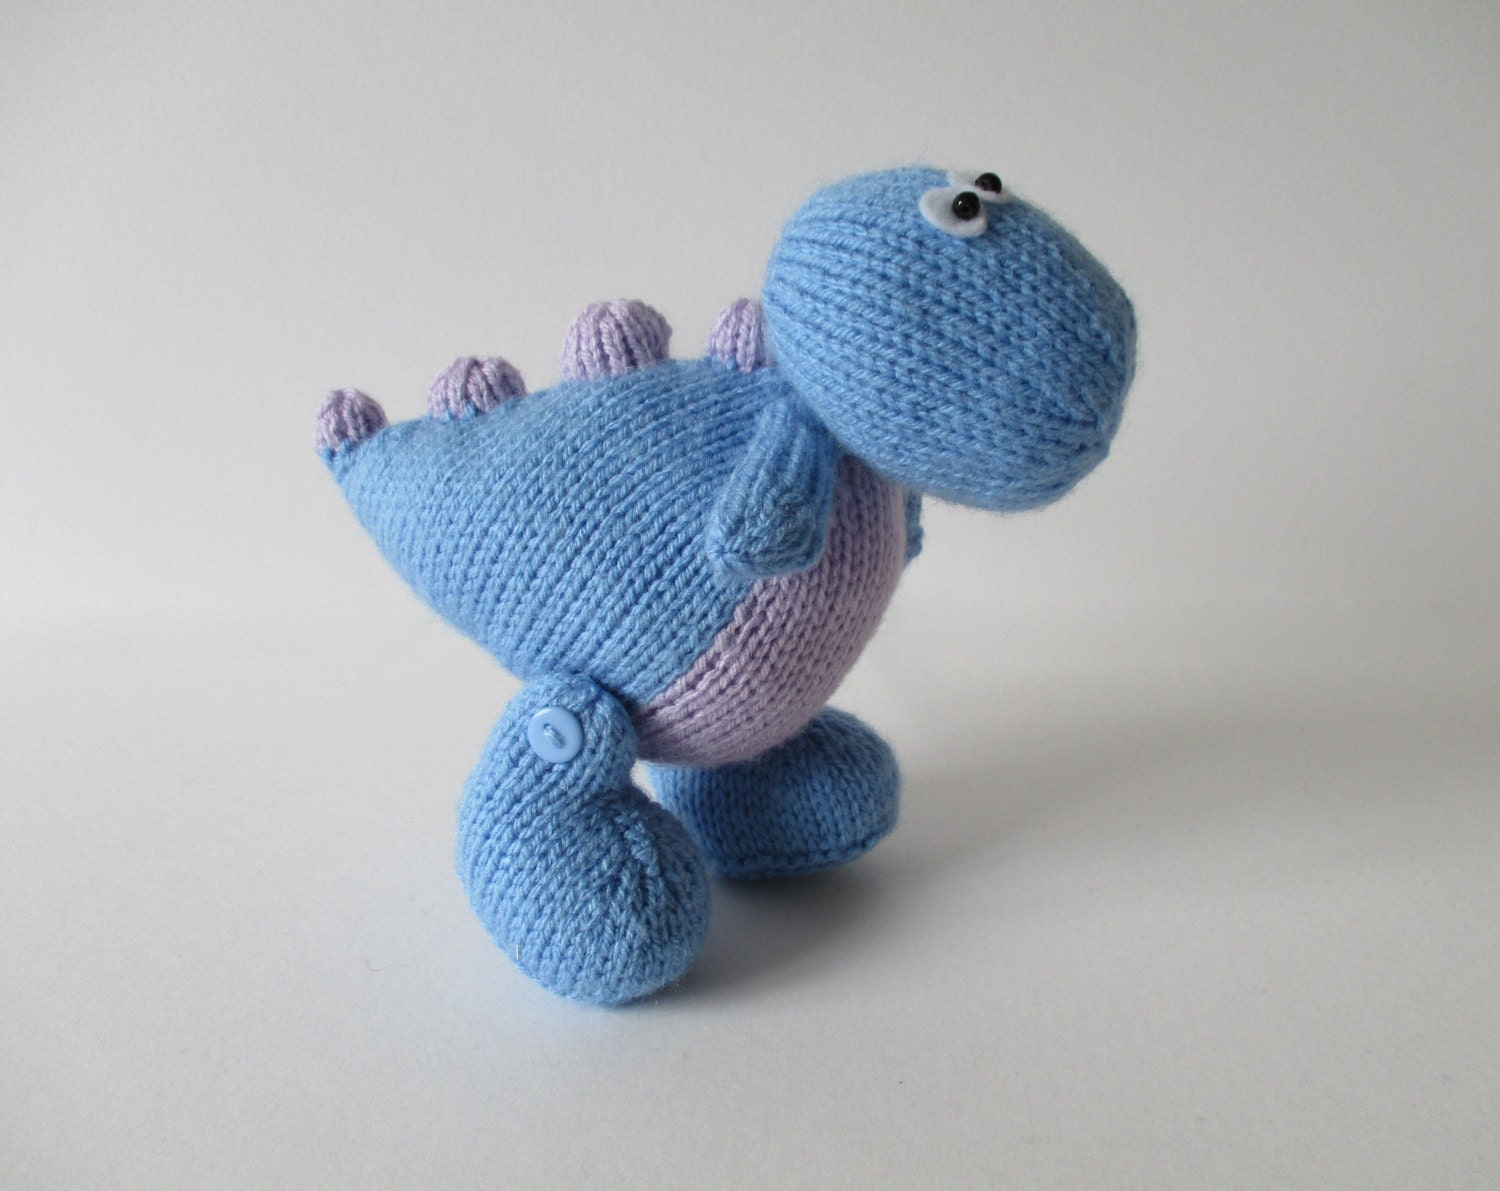 Knit Dinosaur Pattern : Dippy the Dinosaur toy knitting pattern